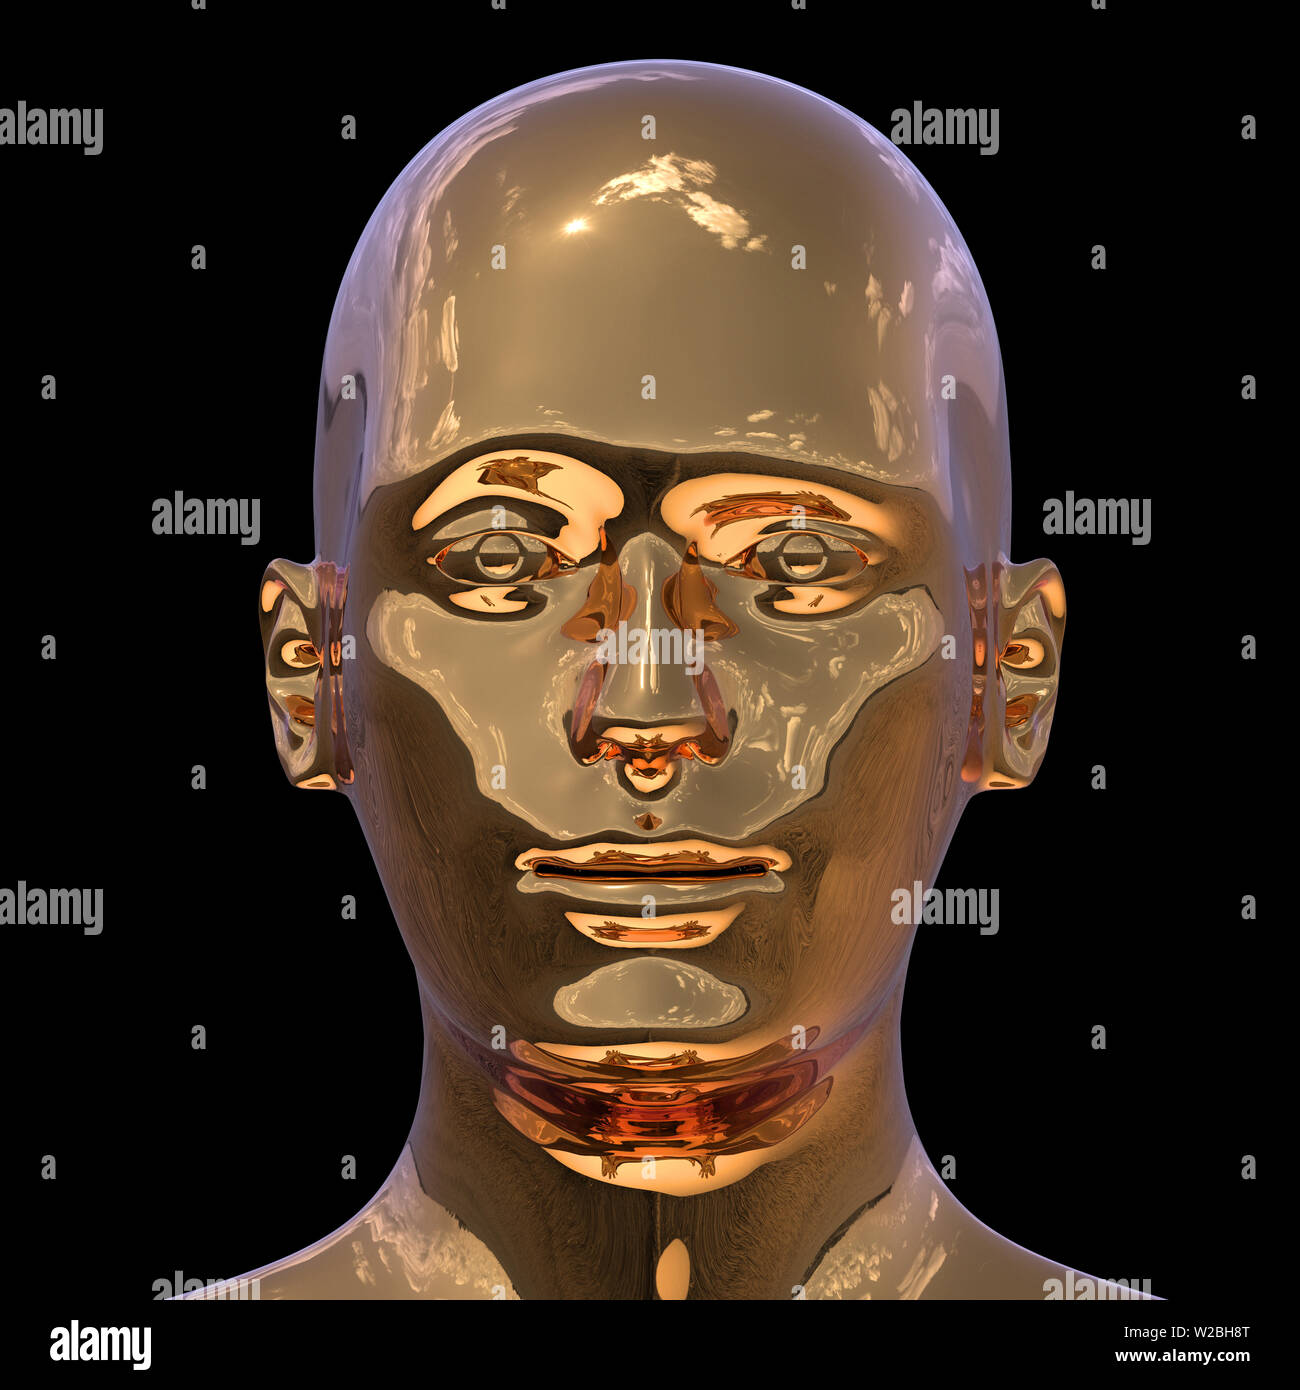 3d-illustration-of-golden-man-face-stylized-portrait-iron-polished-humanoid-robot-head-metallic-shining-creativity-icon-concept-W2BH8T.jpg